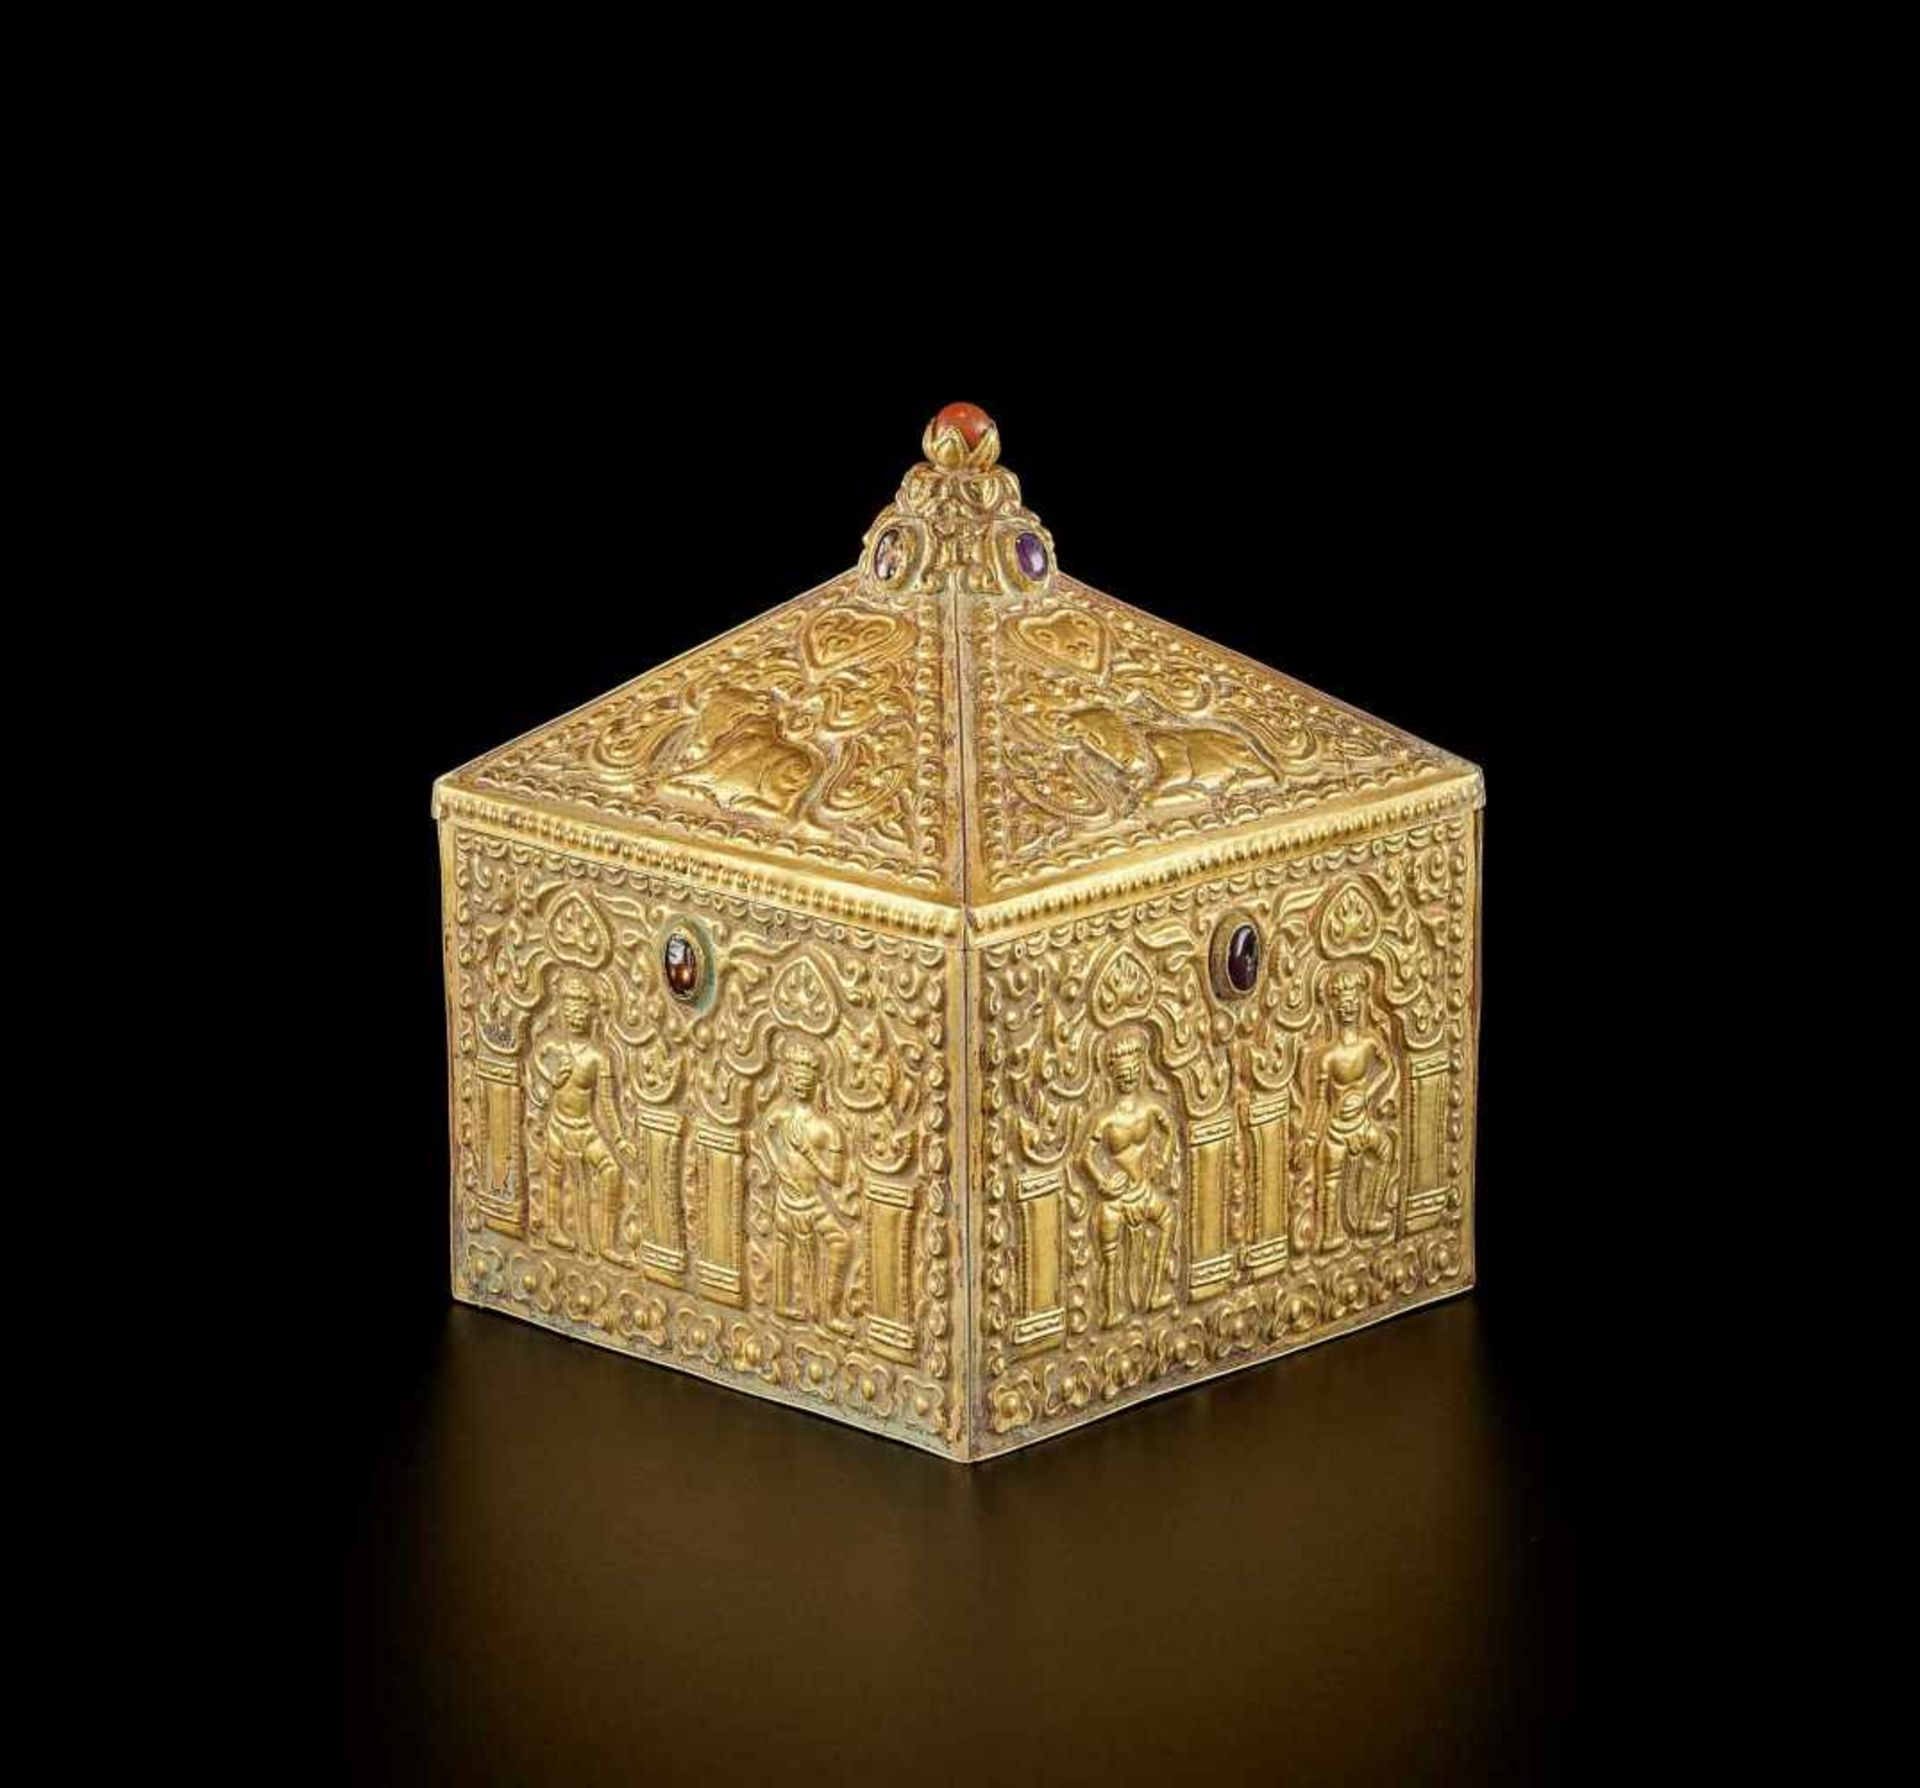 A FINE AND EXTREMELY RARE GEMSTONE-SET CHAM GOLD REPOUSSÉ BOX AND COVER